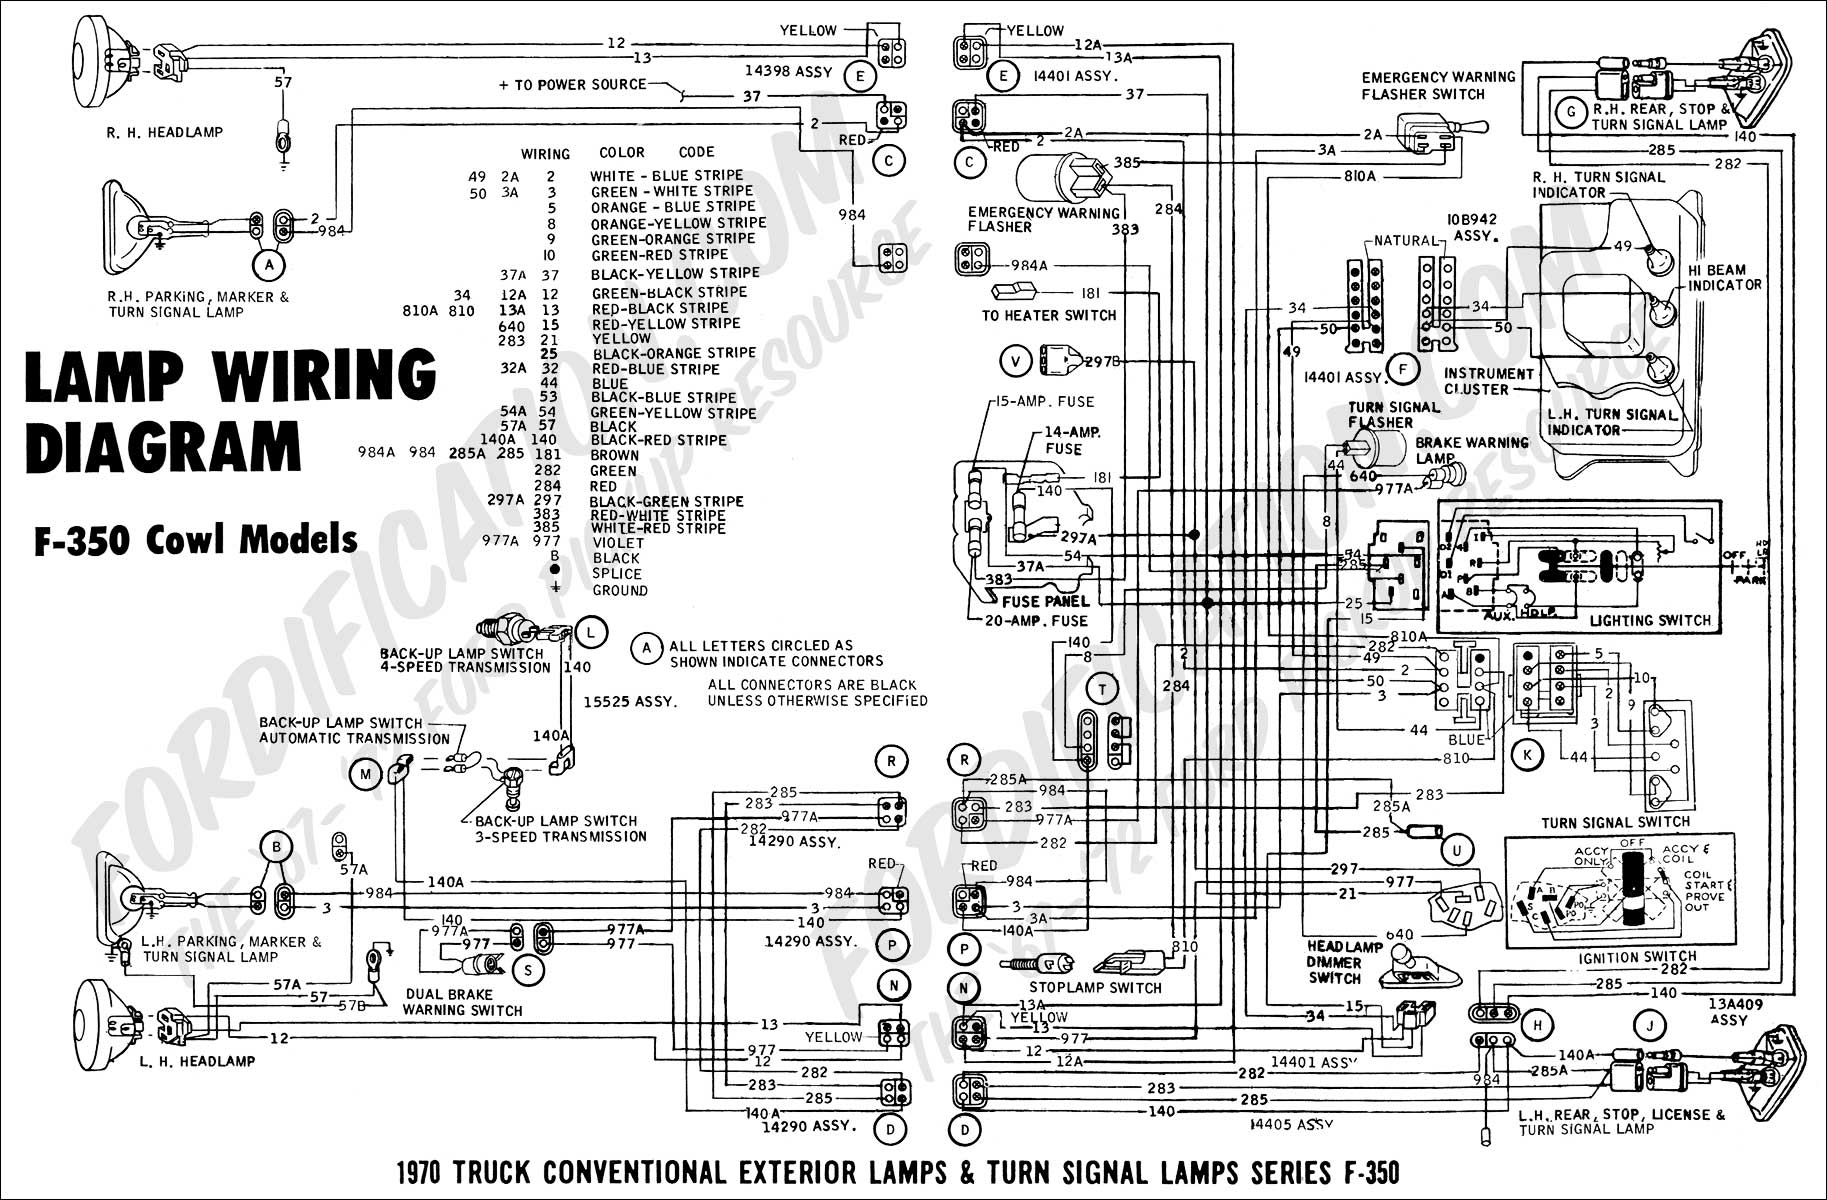 hight resolution of 99 ford explorer fuse box diagram wiring library 2013 equinox fuse box wiring diagram 2002 f350